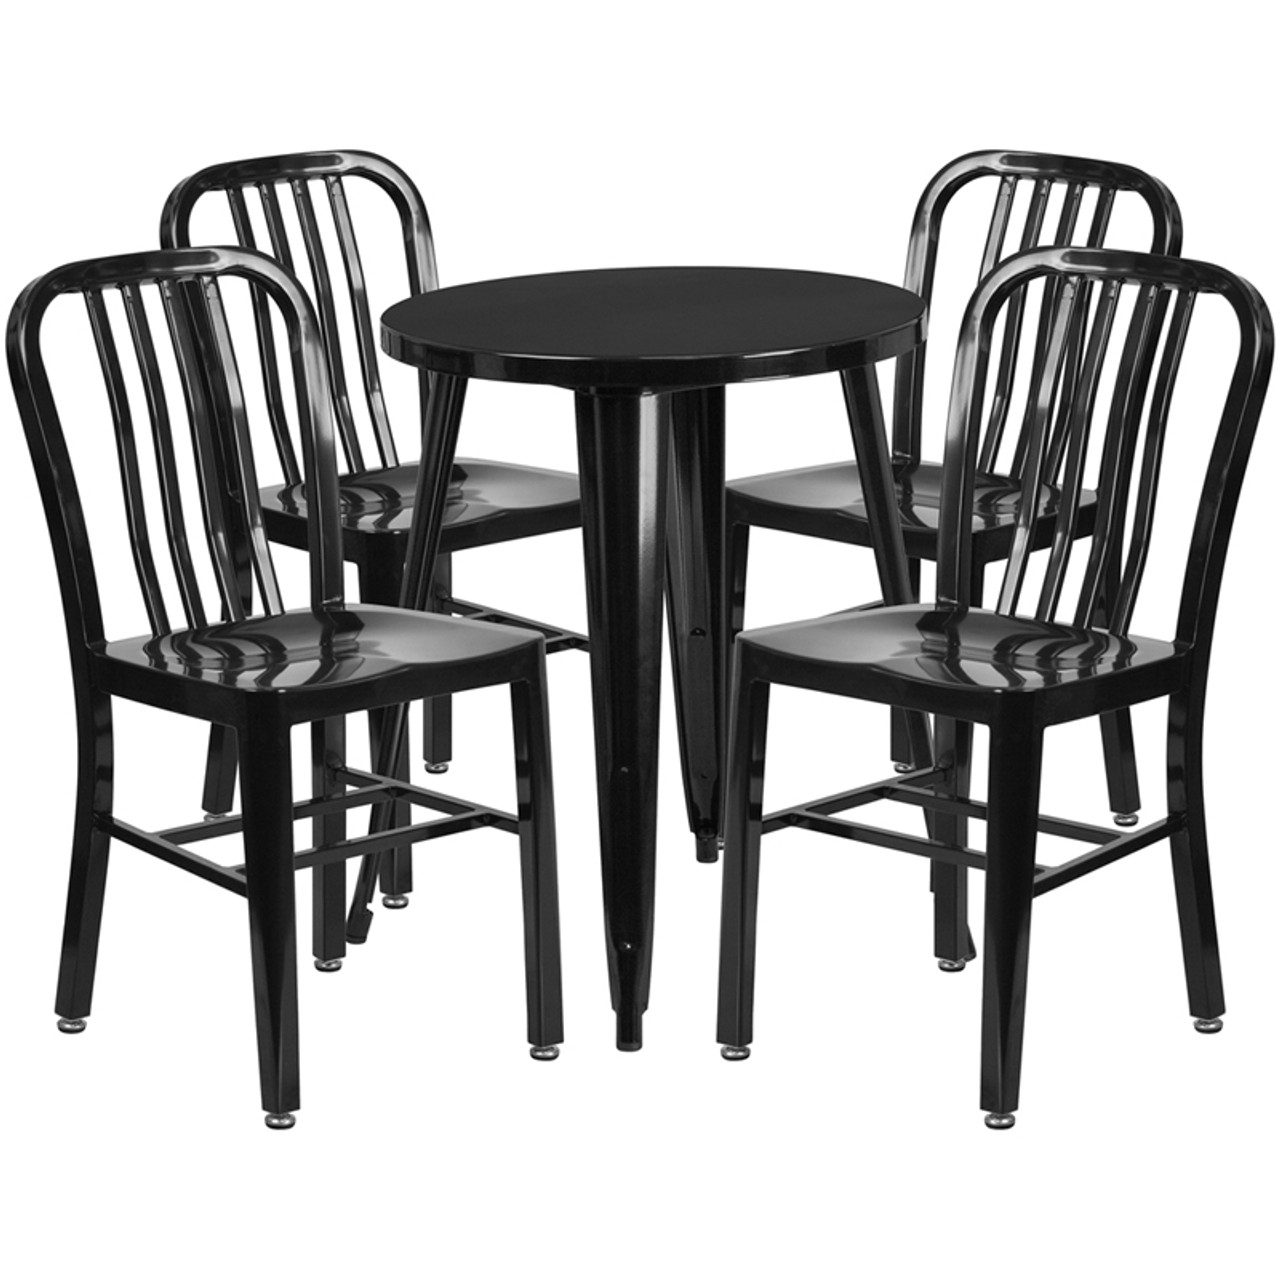 24 Round Black Metal Indoor Outdoor Table Set With 4 Vertical Slat Back Chairs